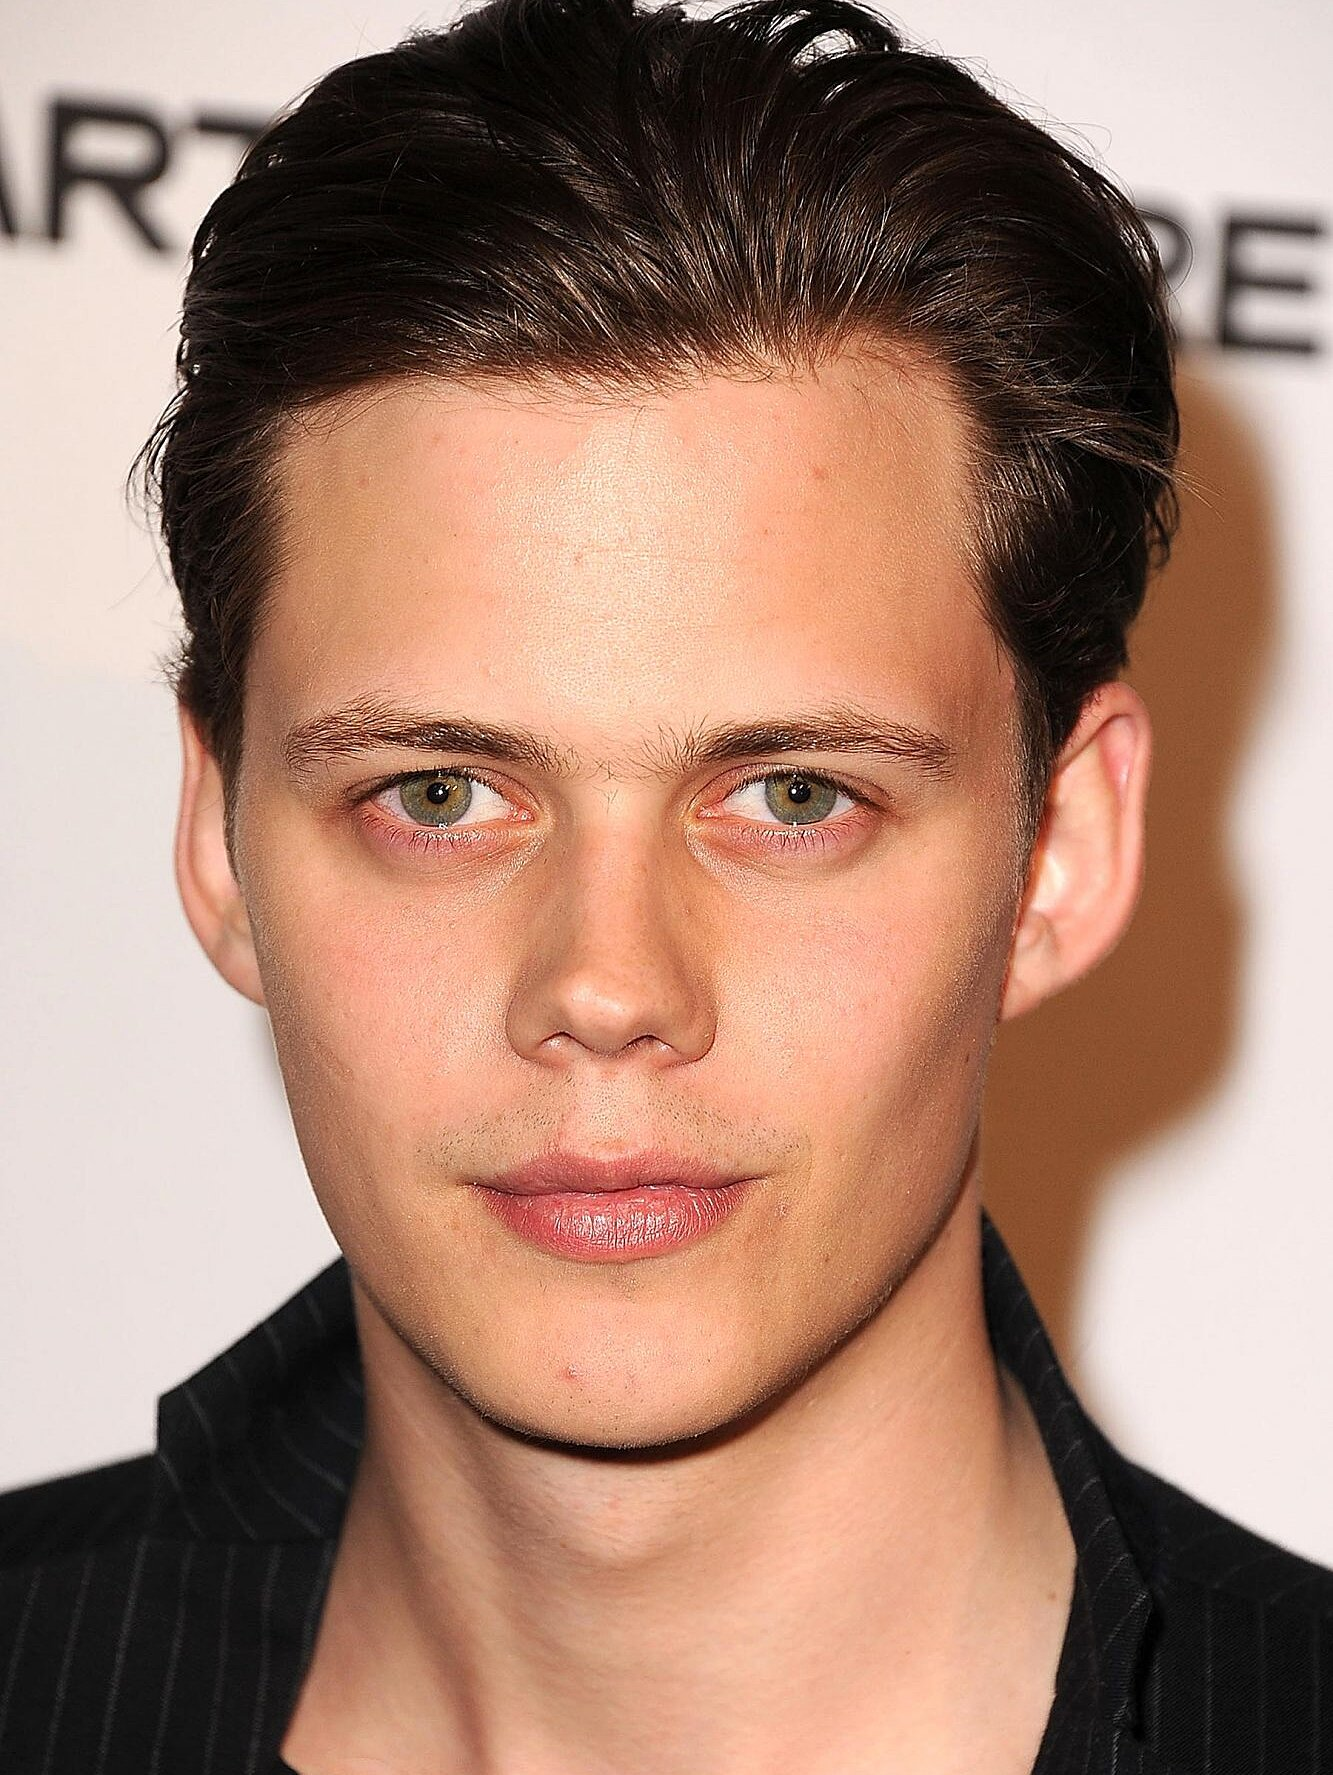 The 30-year old son of father (?) and mother(?) Bill Skarsgård in 2021 photo. Bill Skarsgård earned a  million dollar salary - leaving the net worth at  million in 2021